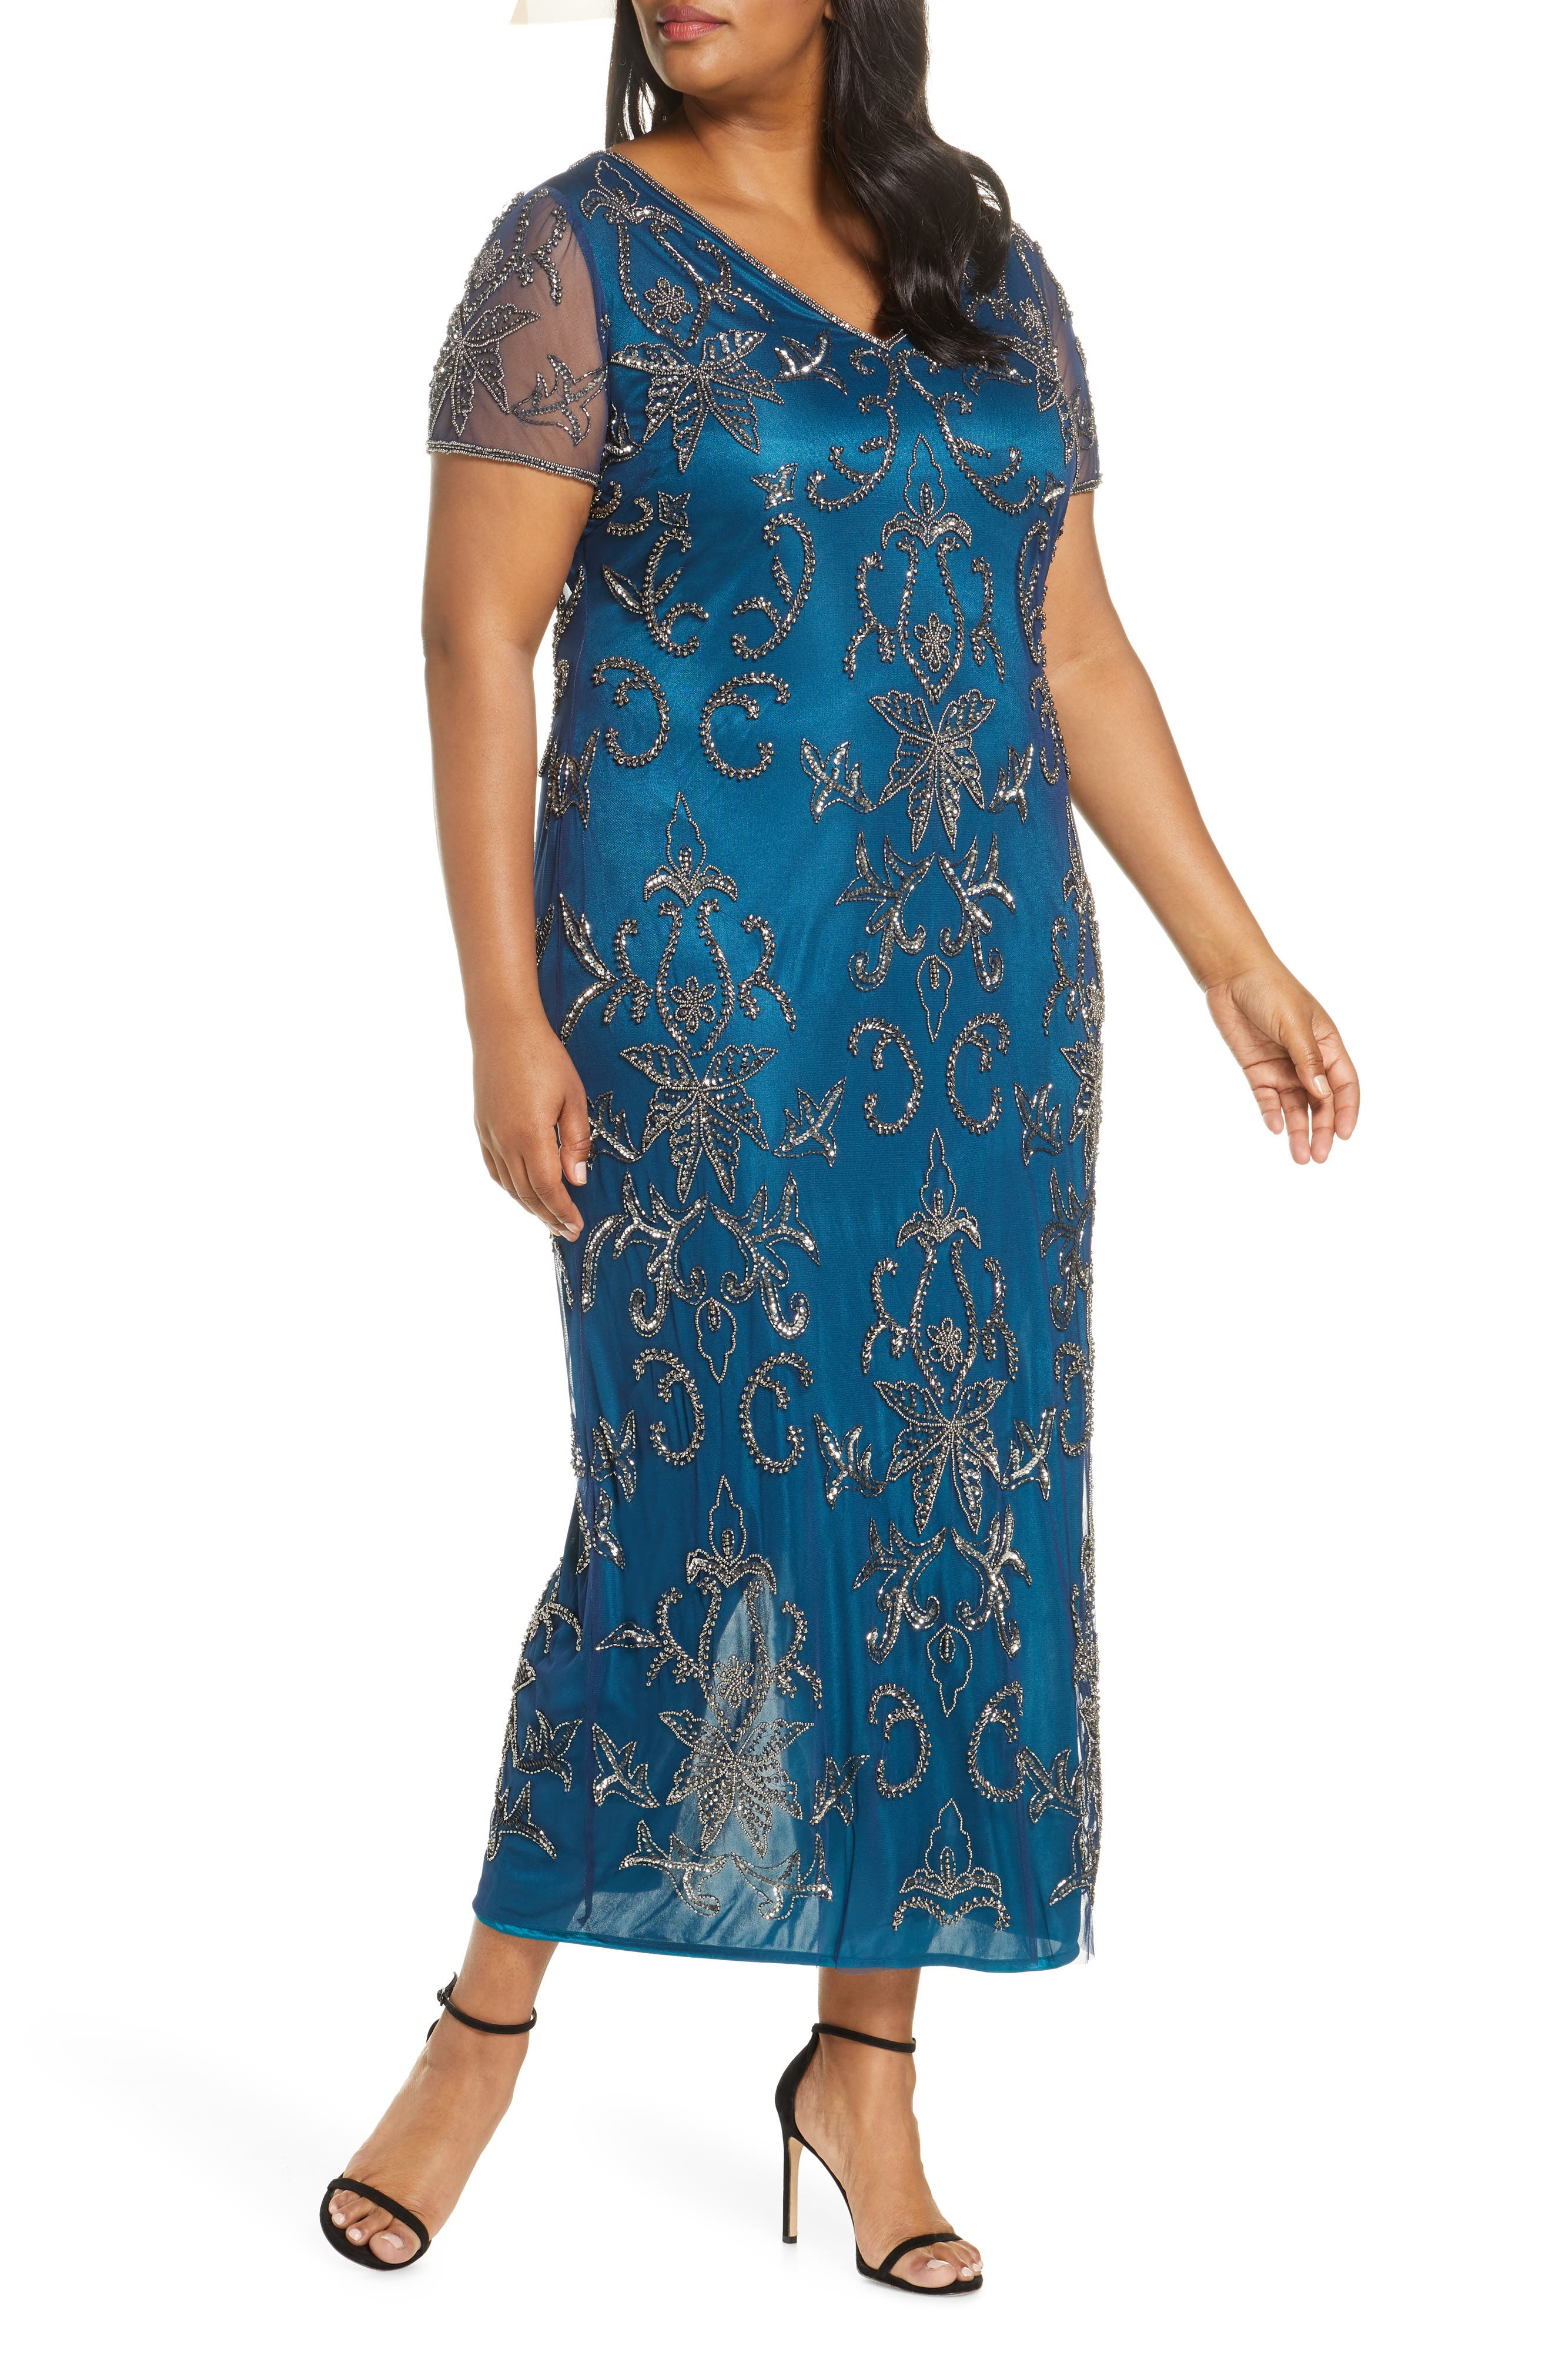 Downton Abbey Inspired Dresses Plus Size Womens Pisarro Nights V-Neck Beaded Mesh Column Gown Size 24W - Blue $248.00 AT vintagedancer.com